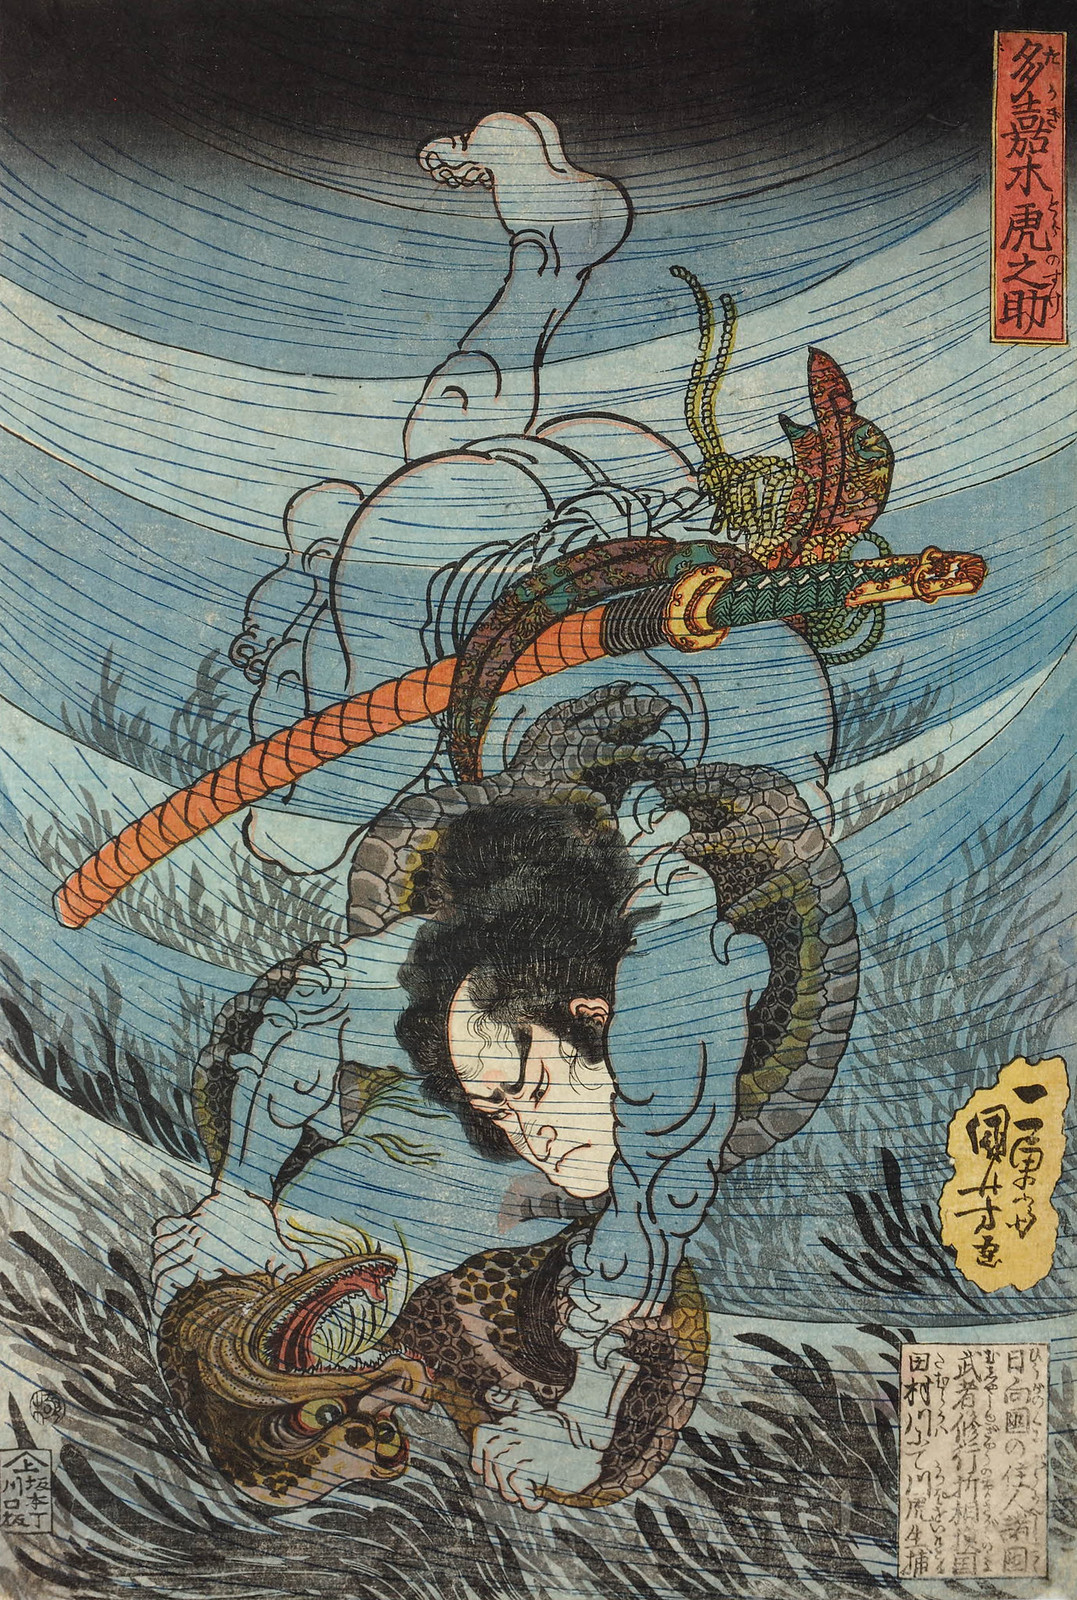 Utagawa Kuniyoshi - Takagi Toranosuke capturing a kappa under the water in the Tamura river in the province of Sagami. Edo Period